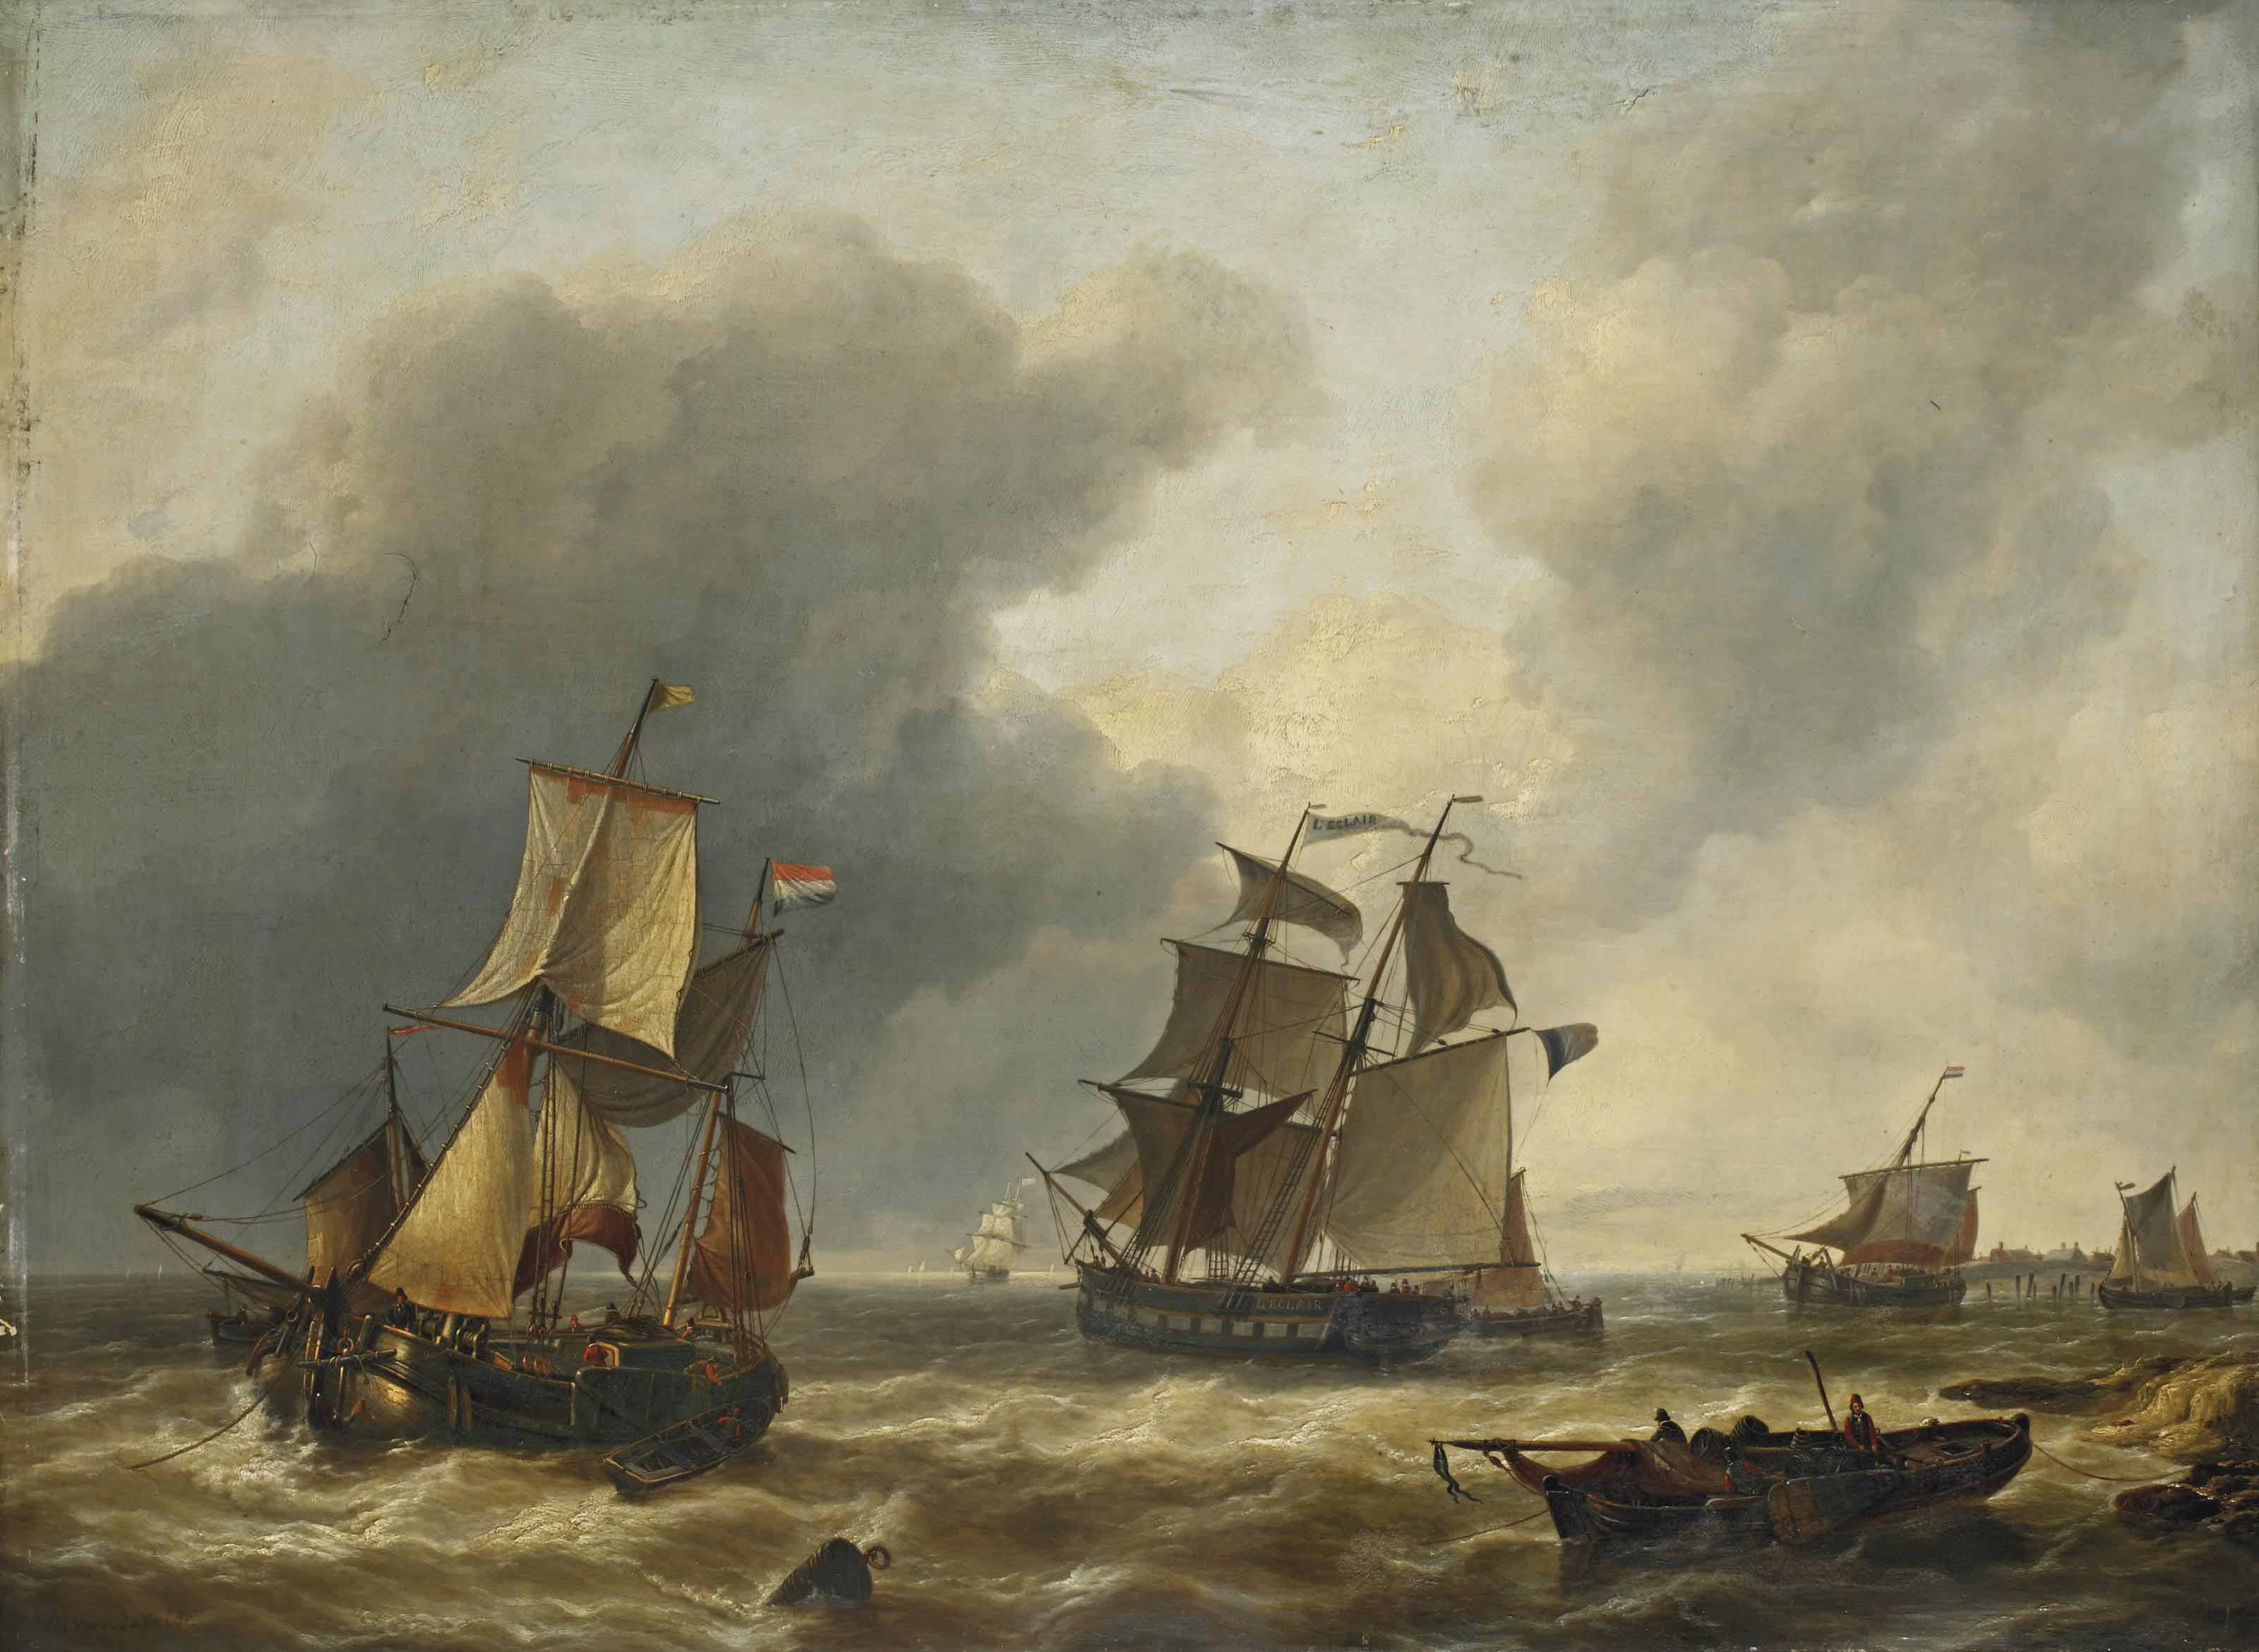 The ship 'L'eclair' together with Dutch sailing vessels at sea, a town in the distance